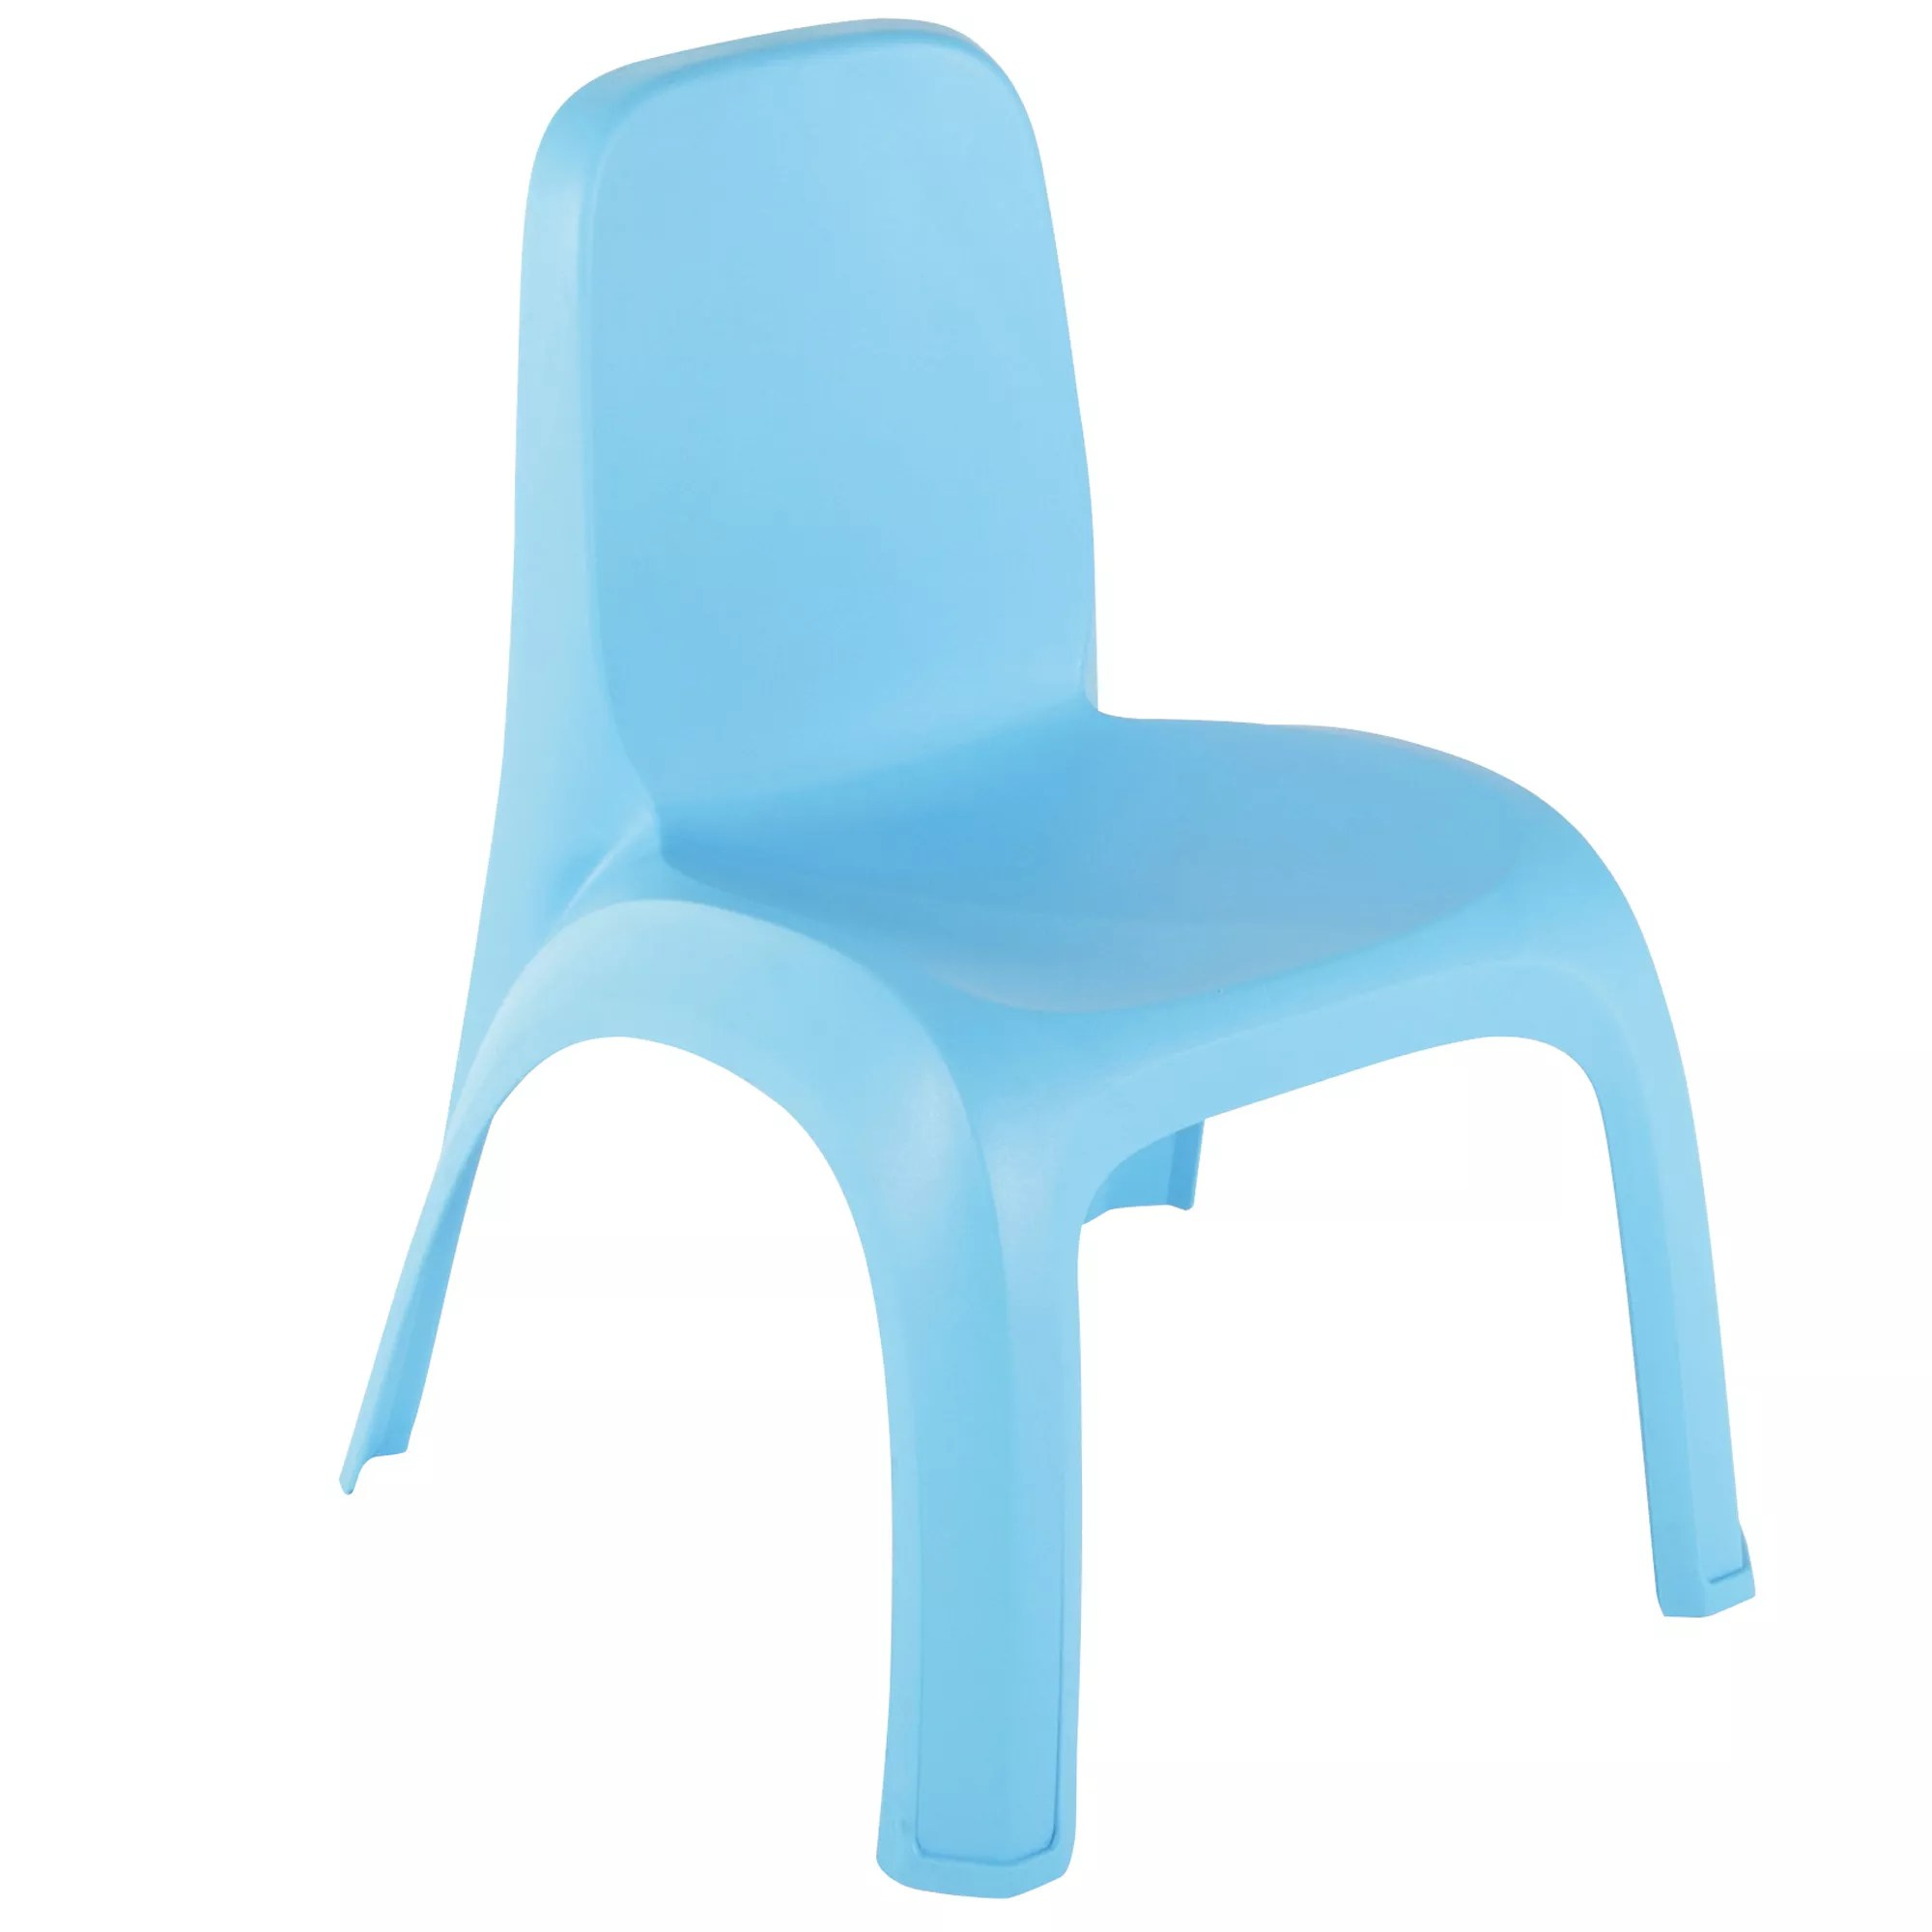 Plastic Kids Chairs Monobloc Plastic Kids Chair Departments Diy At B Q